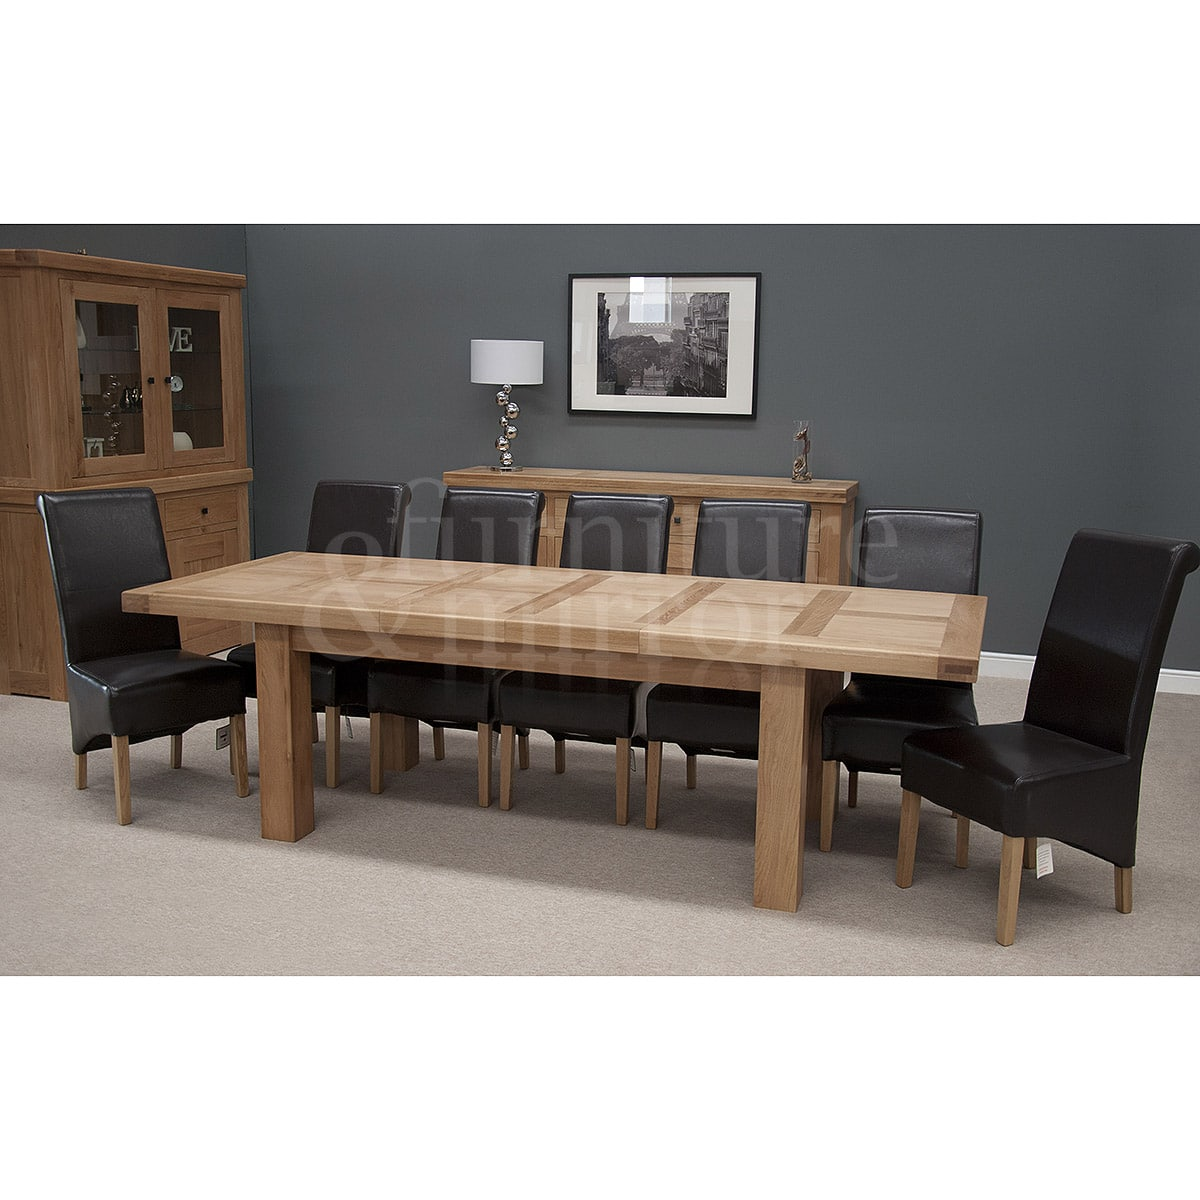 Chunky 12 seater dining table furniture and mirror for Dining room 12 seater table